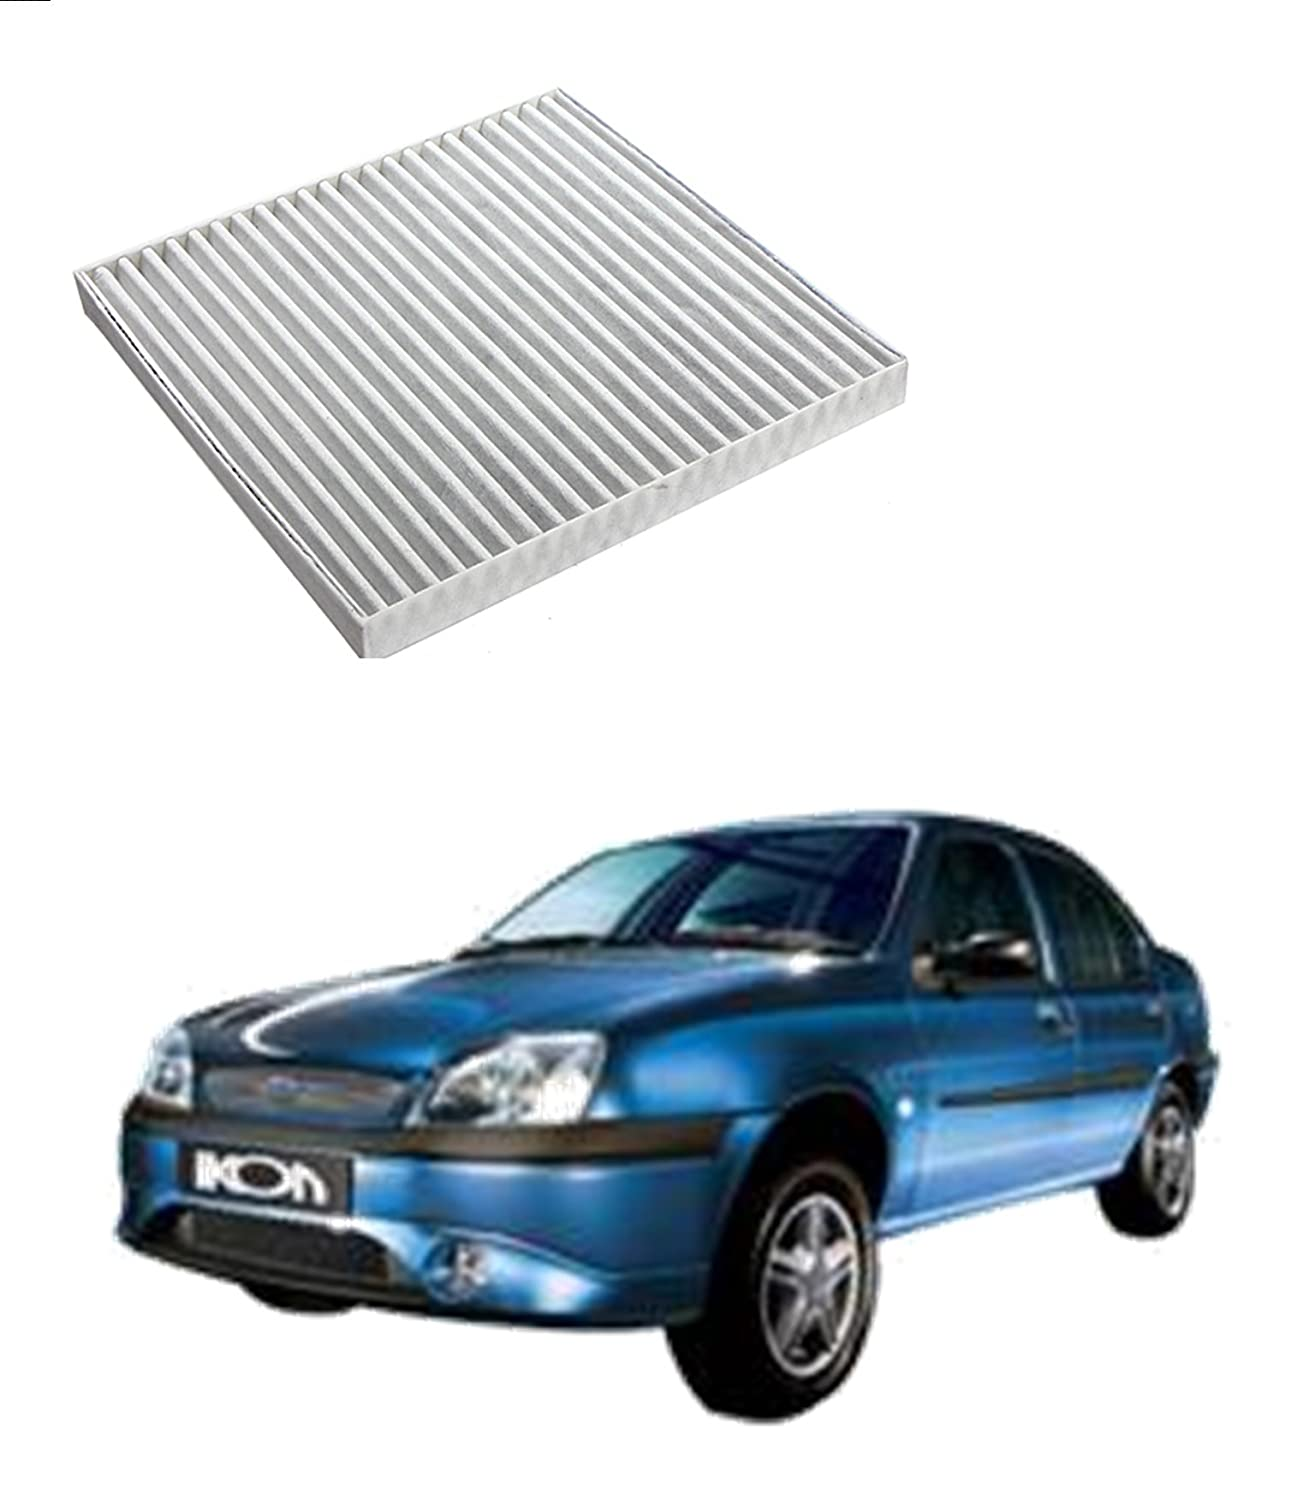 Cabin Air Filter For Ford Ikon 2004 2008 Diesel 1 8l Set Of 1 Pcs